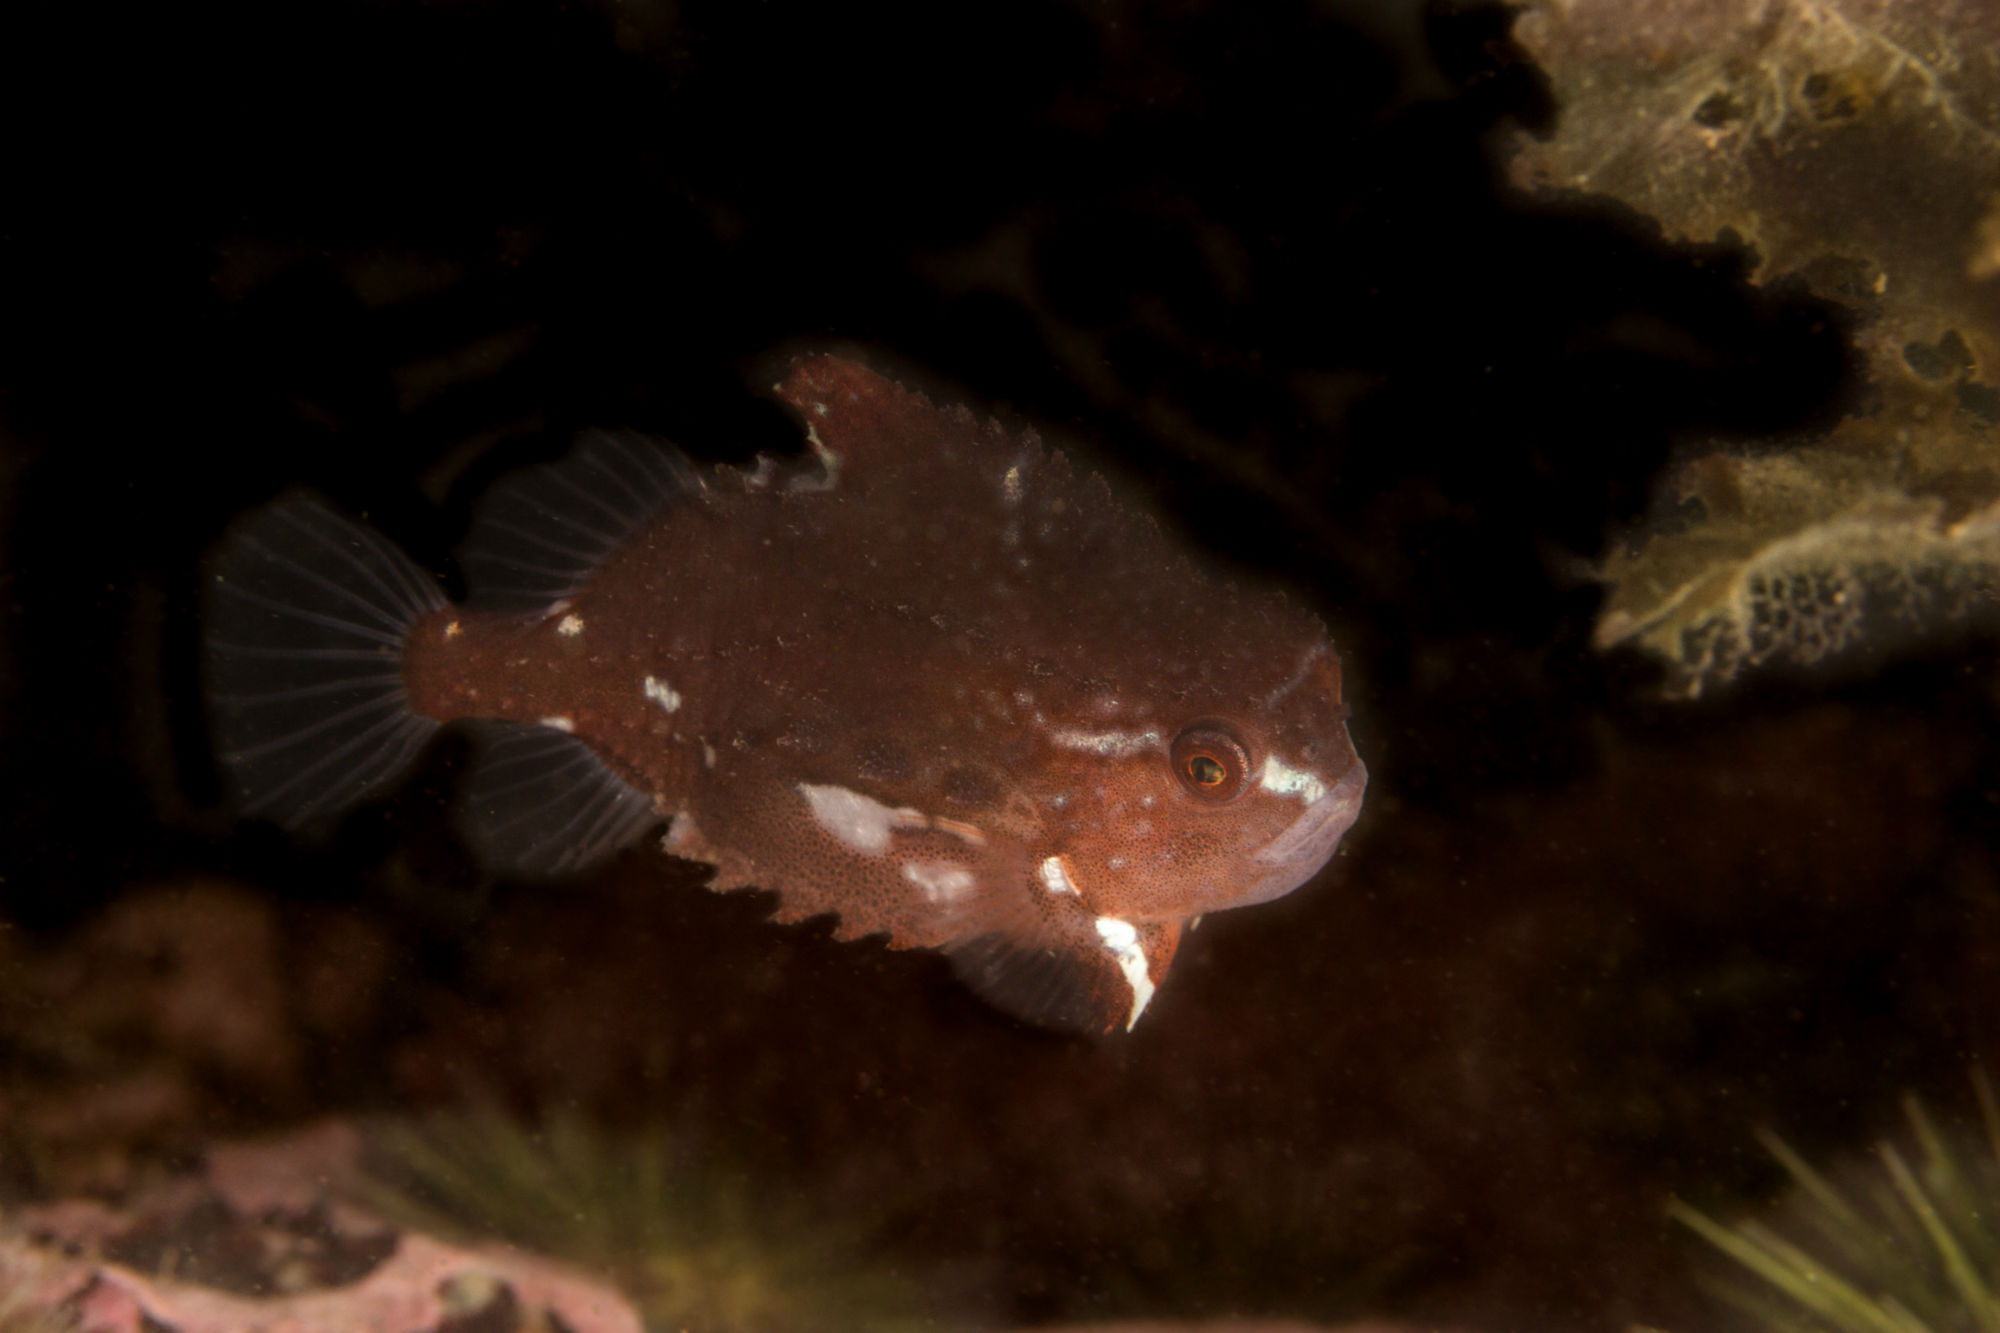 A Purple Lumpsucker Swimming at the Cancat Scuba Diving Site, New Brunswick, Canada